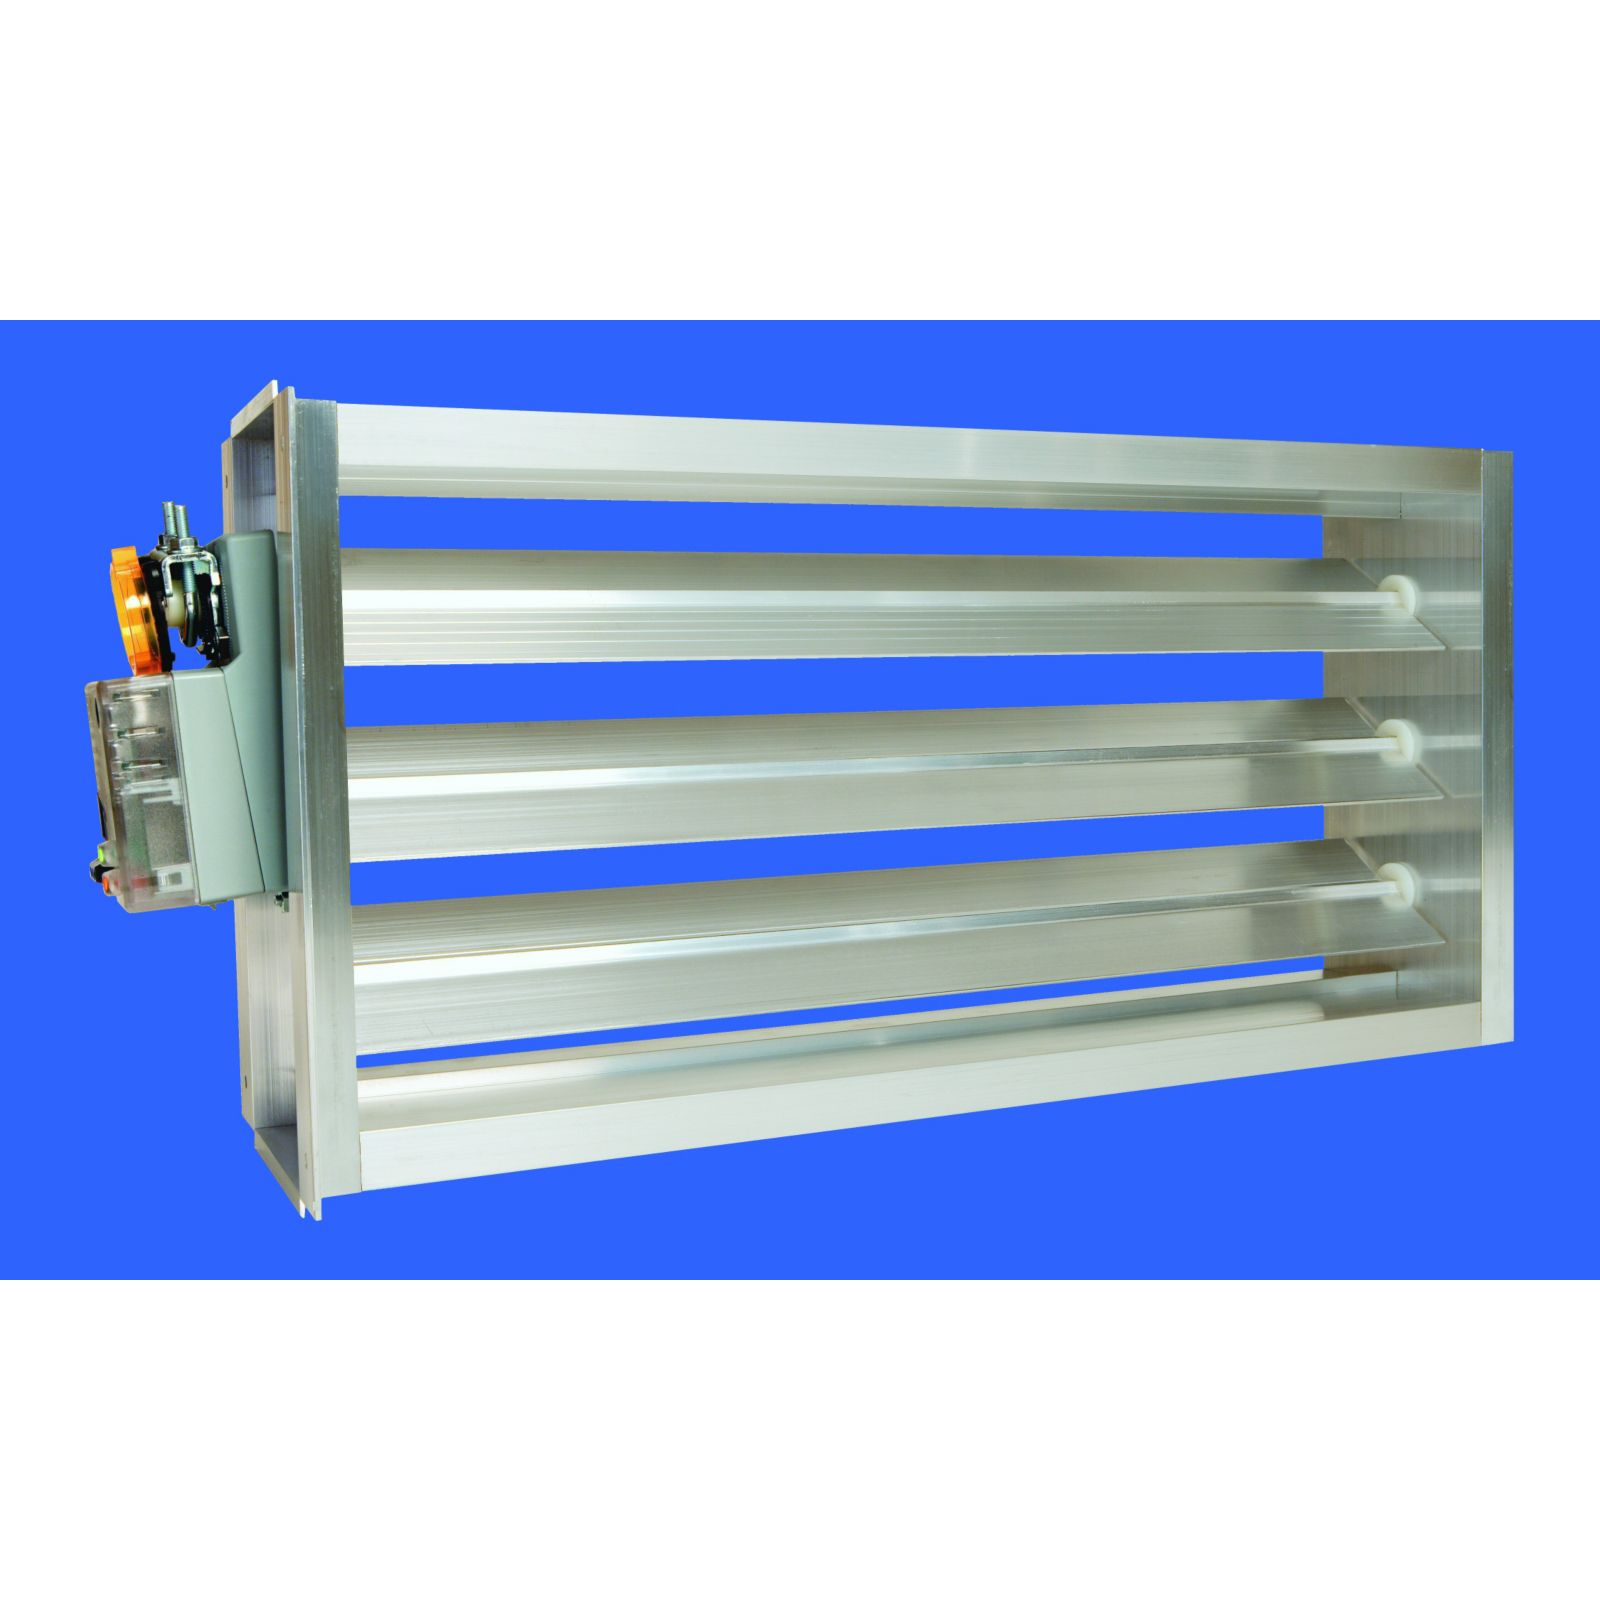 "EWC 14X16 ND - Motorized Ultra-Zone Damper, 14"" X 16"""